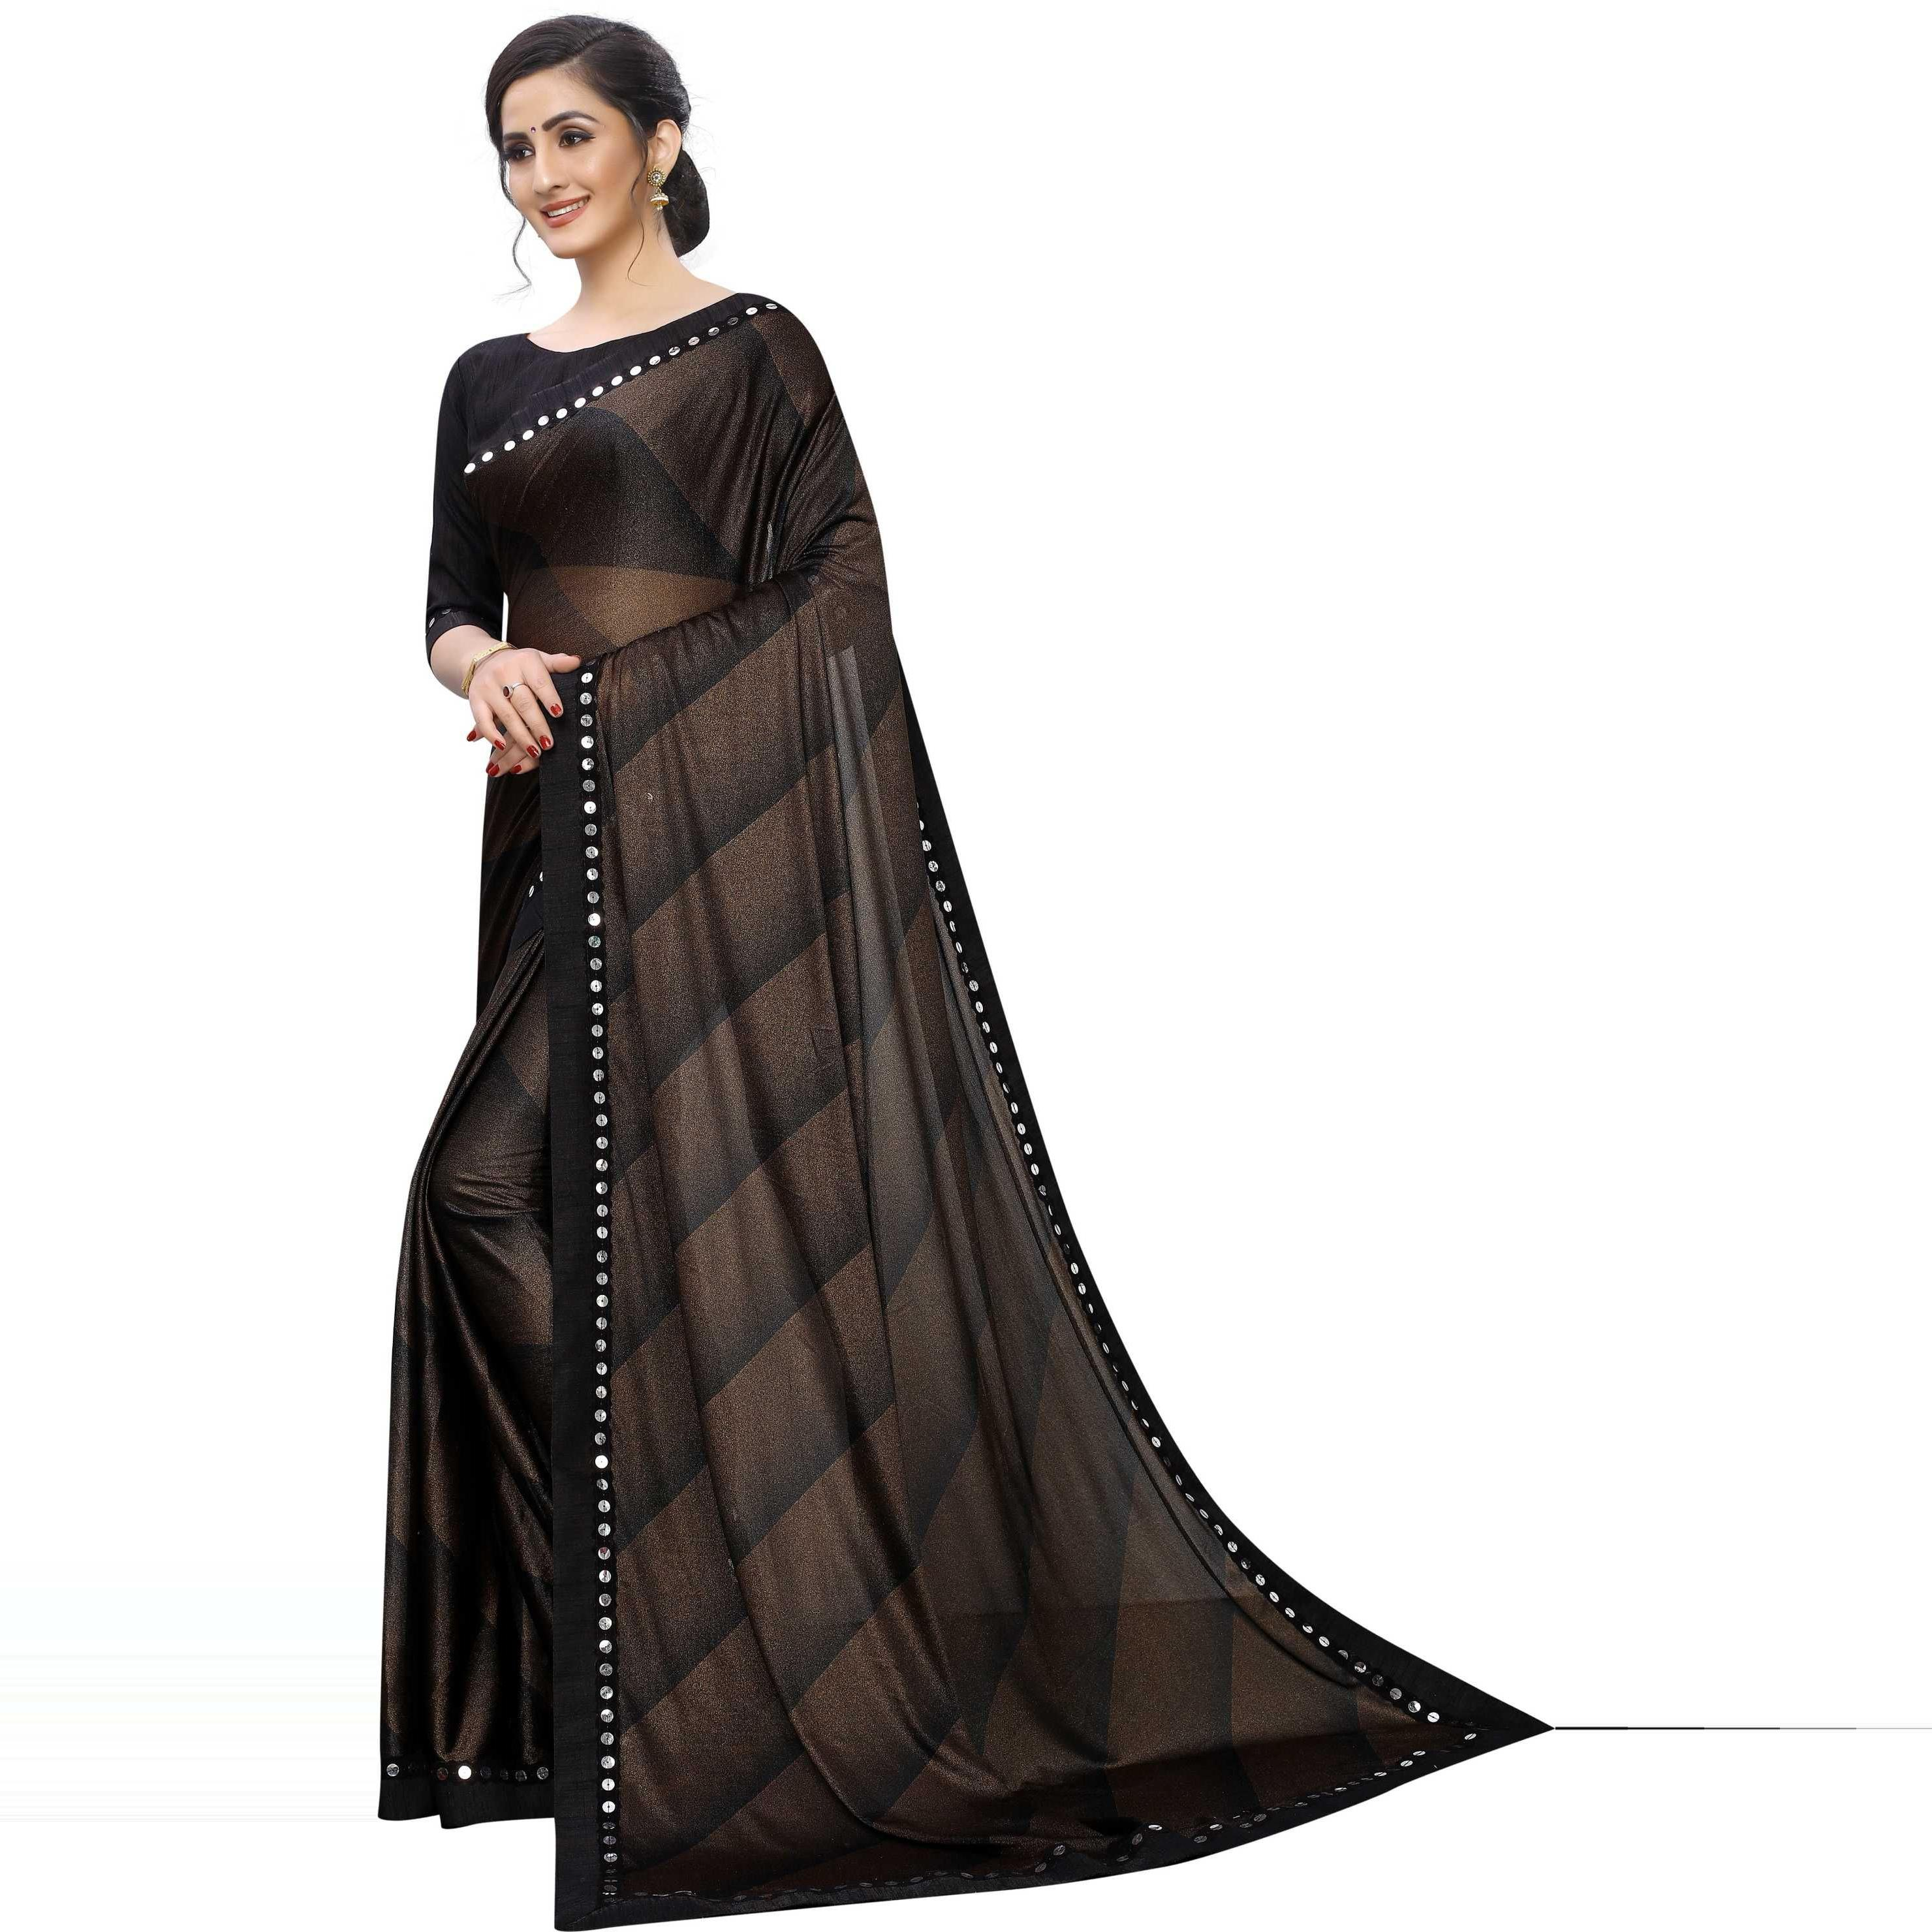 Eye-catching Coffee Brown Colored Party Wear Printed Lycra Blend Saree